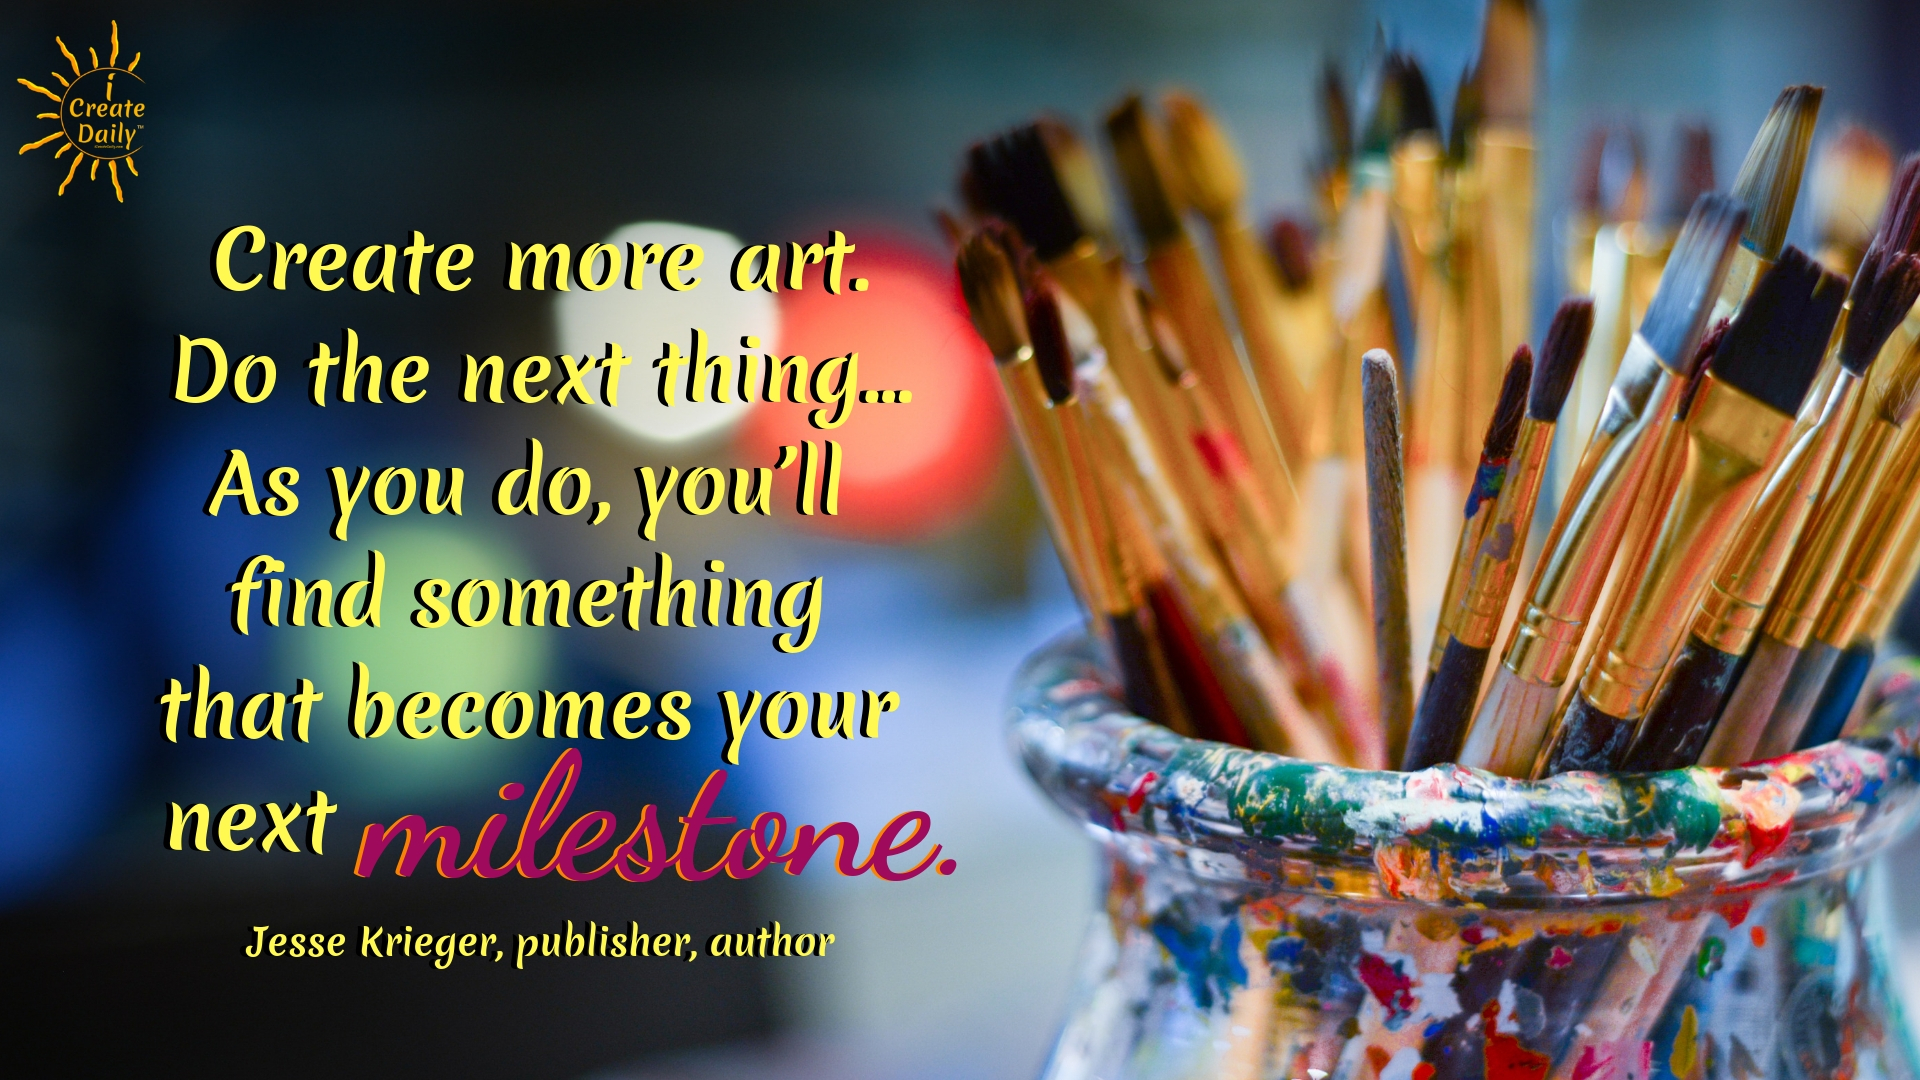 """Create more art. Do the next thing... As you do, you'll find something that becomes your next milestone."" ~Jesse Krieger, publisher, author, and entrepreneur #iCreateDaily #GoalsQuote #MeaningfulQuotes #ArtistQuotes #WritersQuotes"